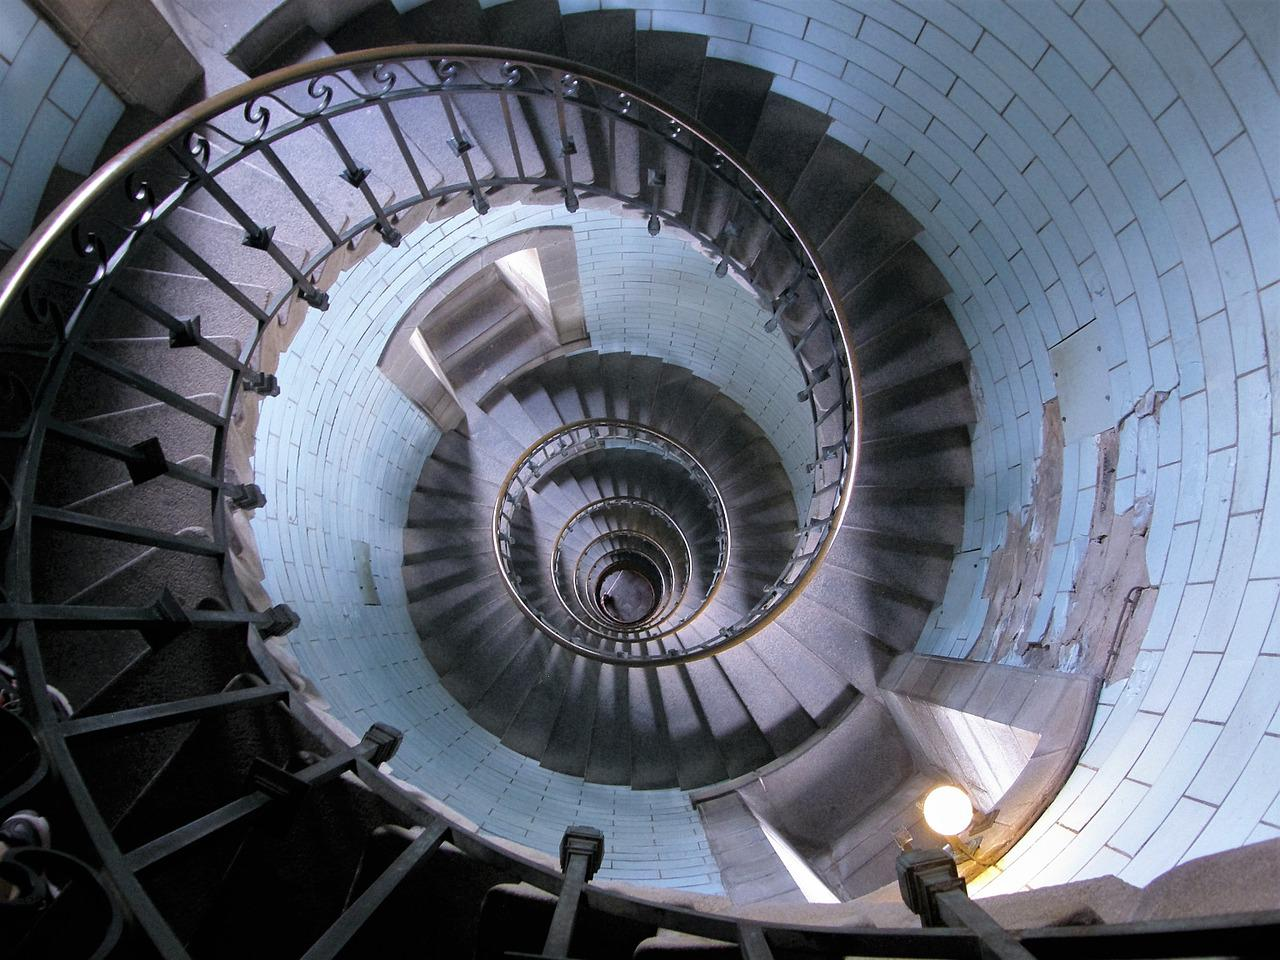 Stairs Lighthouse Spiral Staircase - Free photo on Pixabay